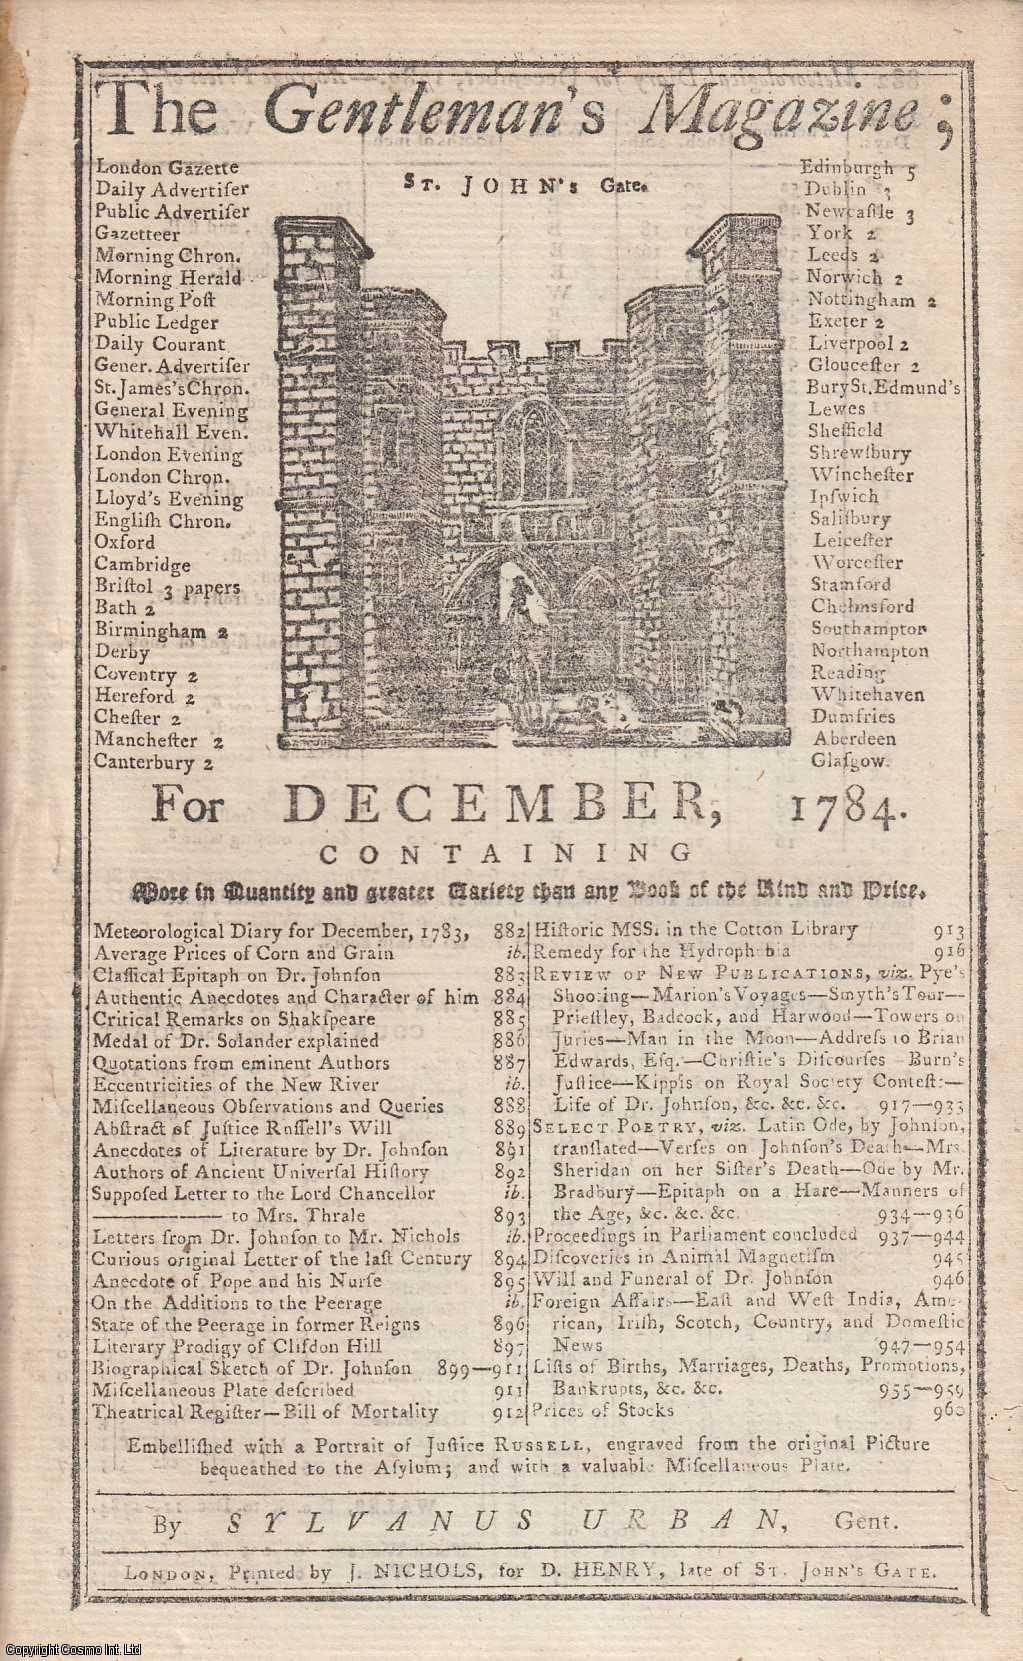 The Gentleman's Magazine for December 1784. FEATURING A folding plate of The Pedigree of Richard Russell;  a Portrait of Richard Russell; a Miscellaneous Plate of Antiquities., Urban, Sylvanus.